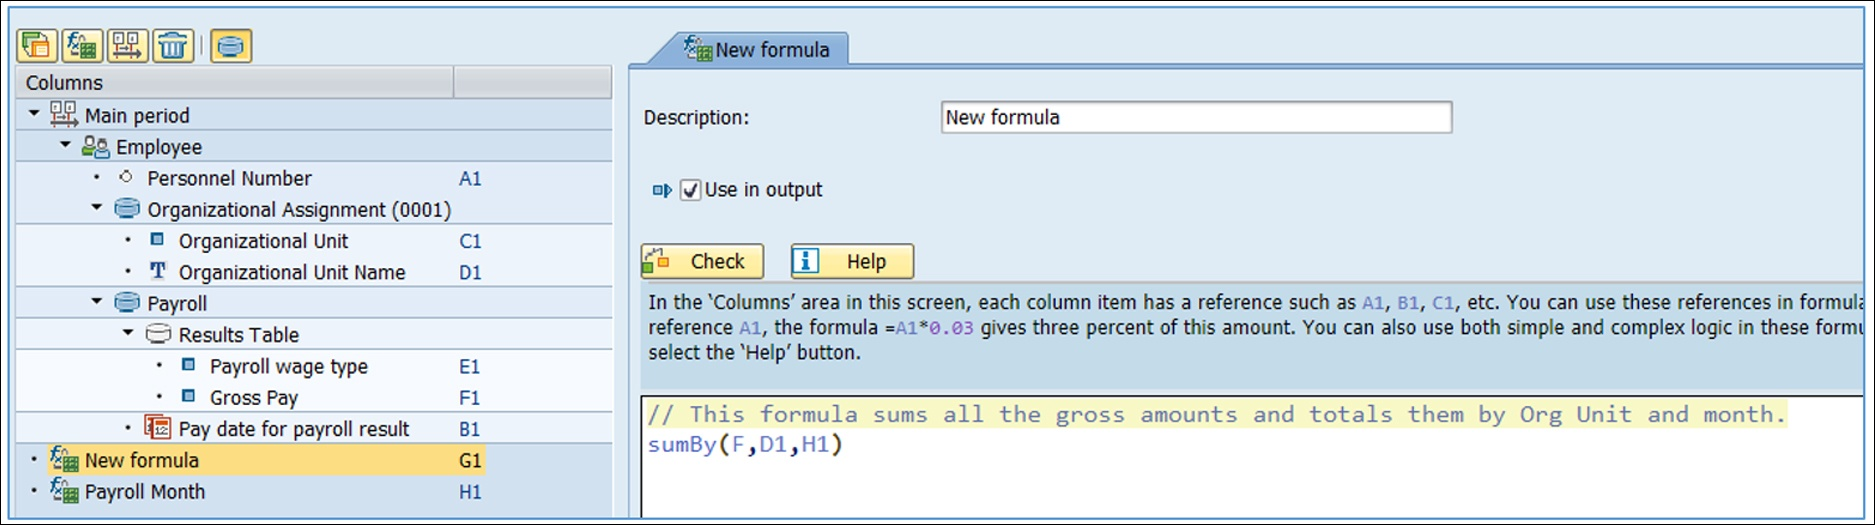 The second formula creates the total gross pay, subtotaled by Org Unit and by month. Also, this formula is using the output of the earlier formula as one of its parameters. Query Manager knows to execute the first formula before the second